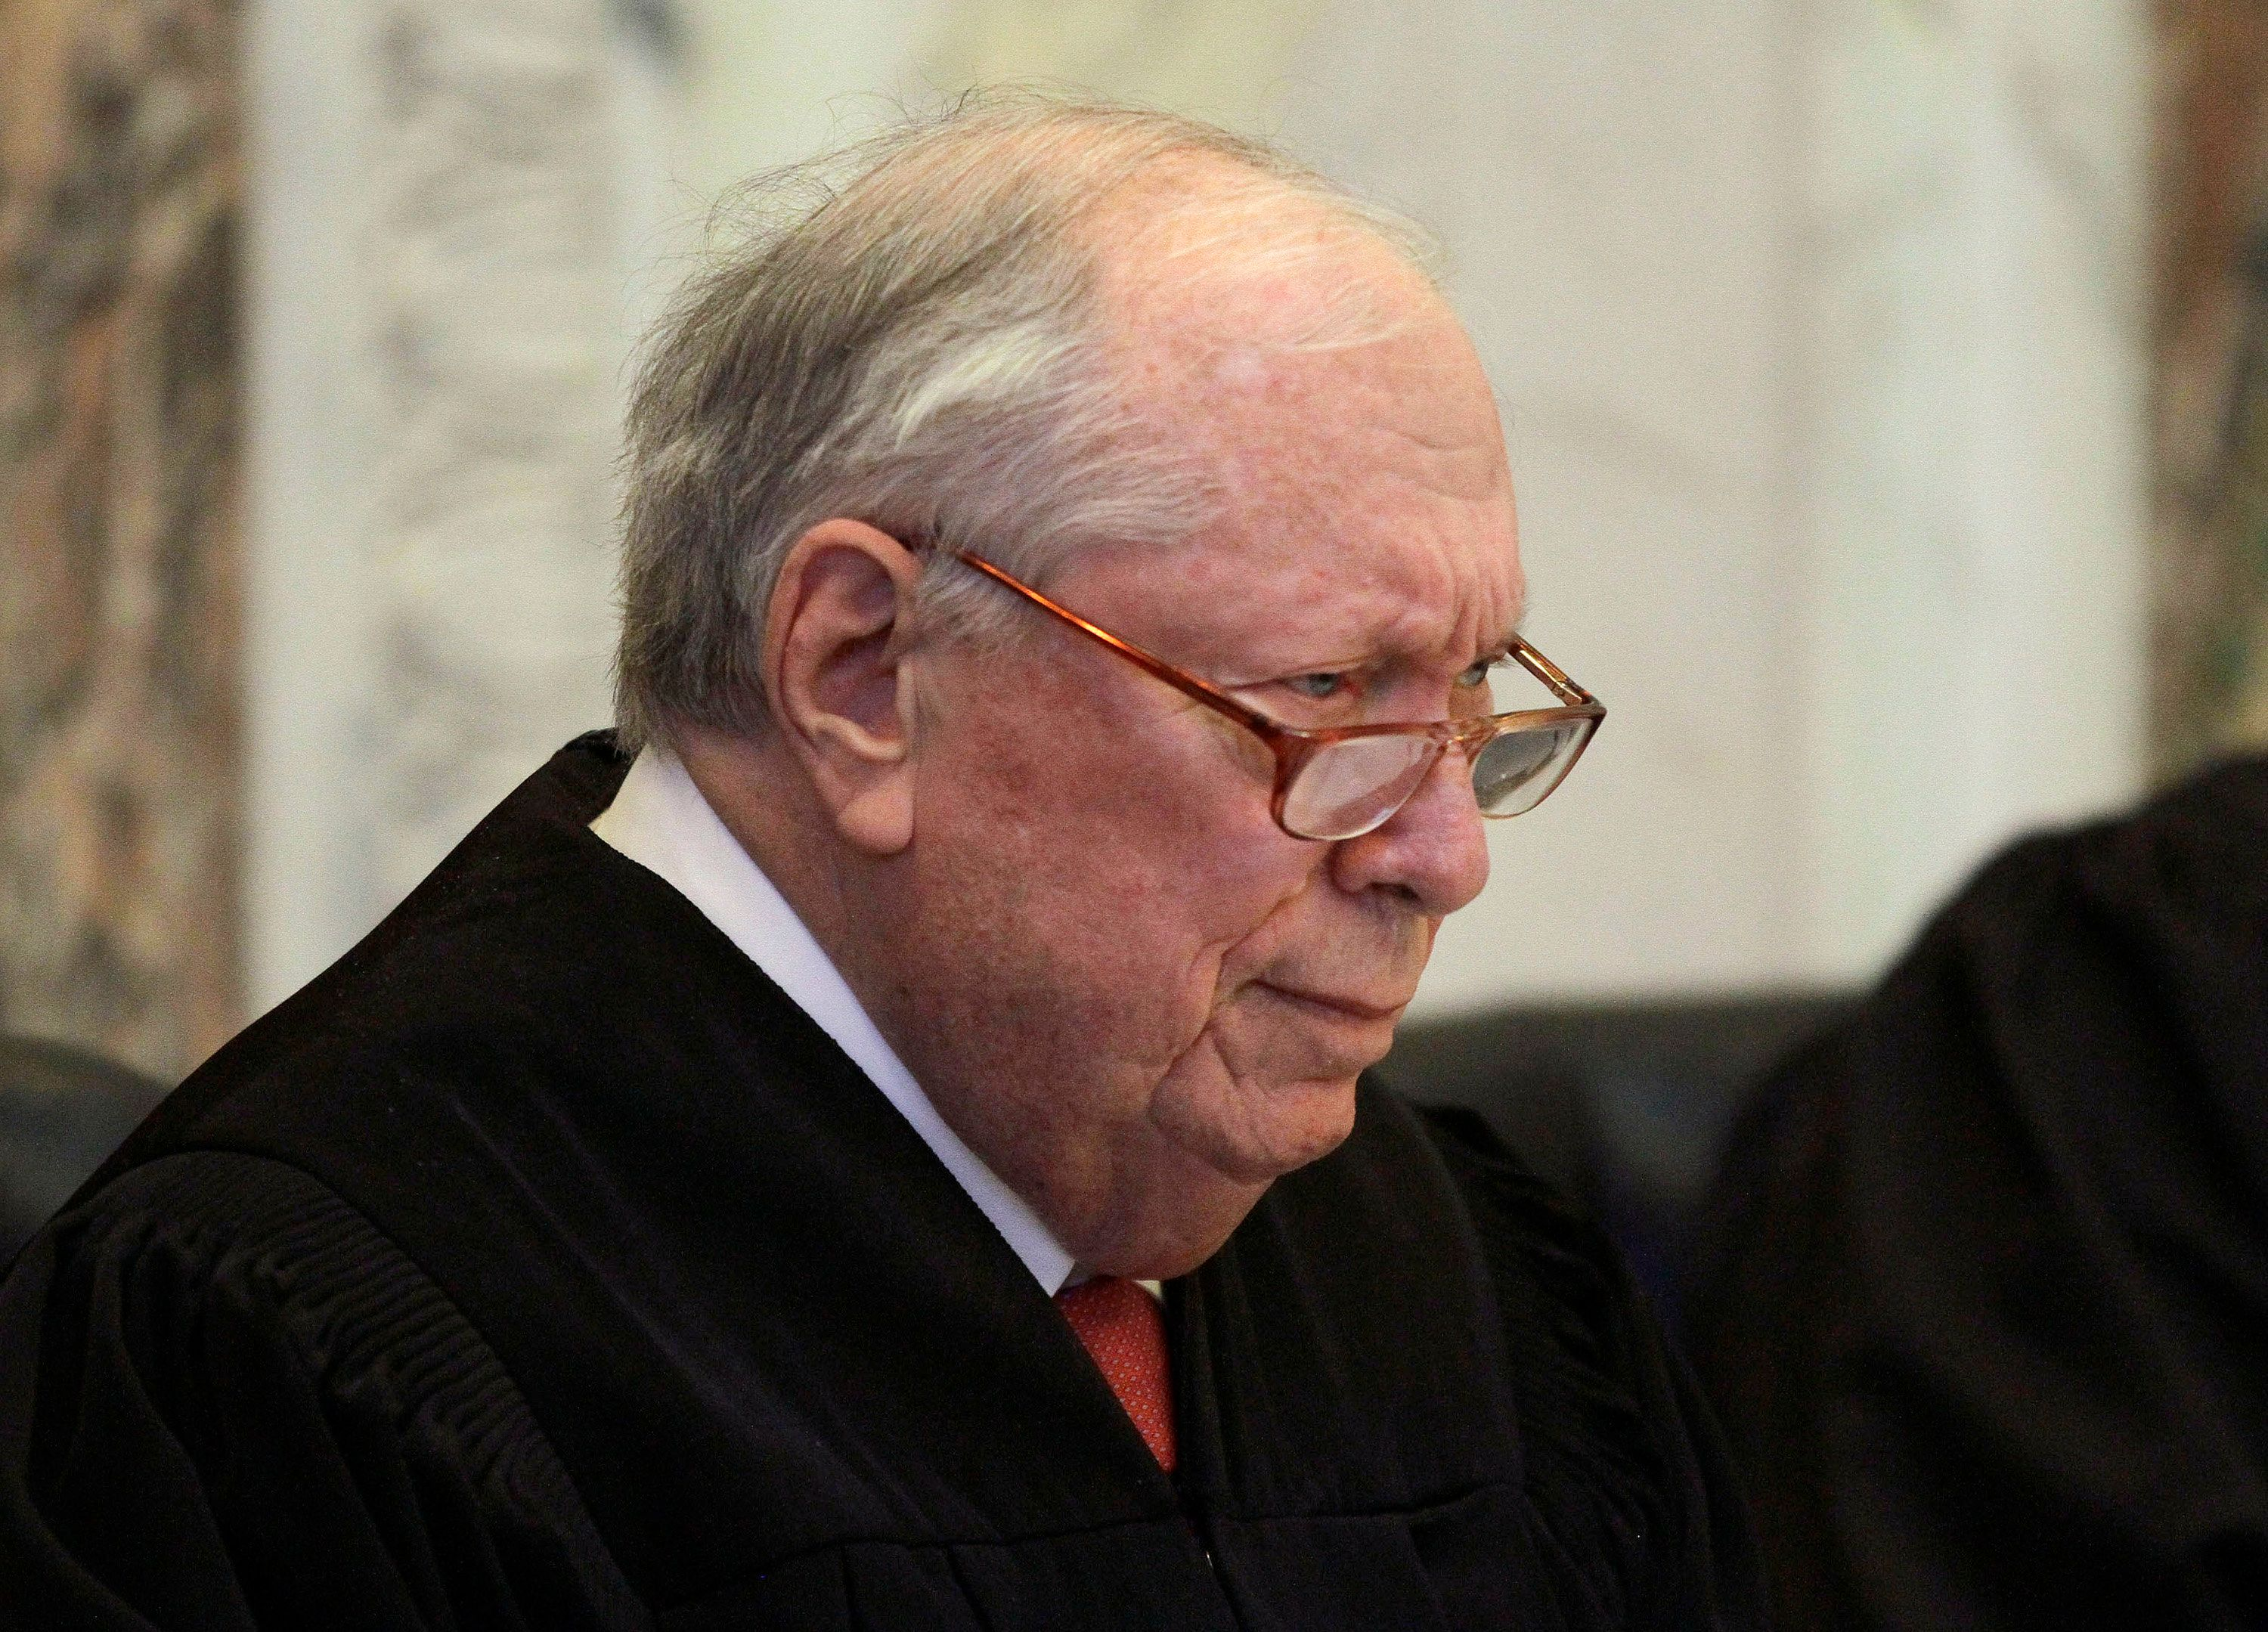 Judge Stephen Reinhardt, appointed to the bench by President Jimmy Carter, is the longest-serving member of the U.S. Court of